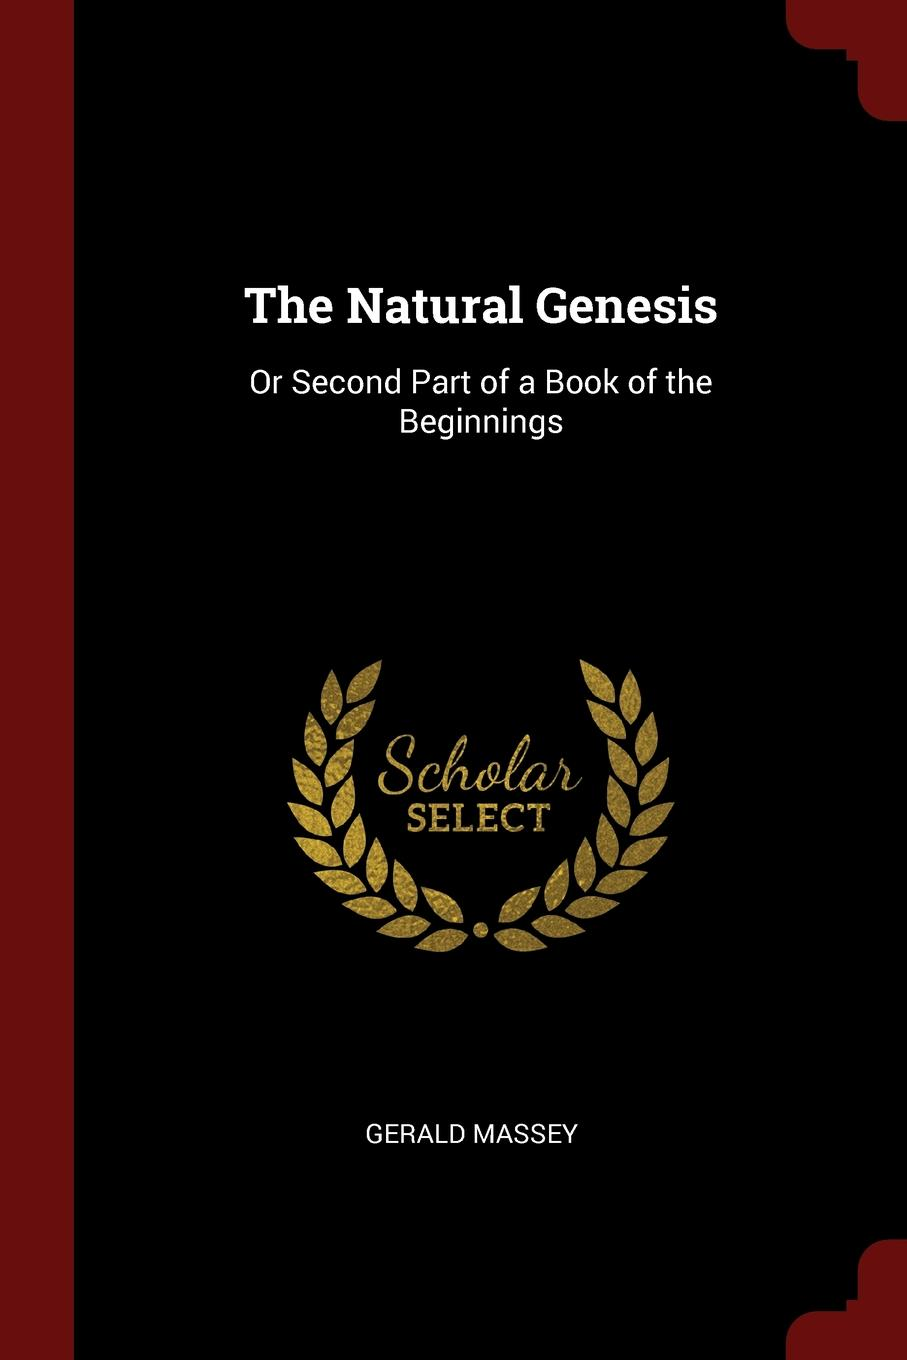 Gerald Massey The Natural Genesis. Or Second Part of a Book of the Beginnings